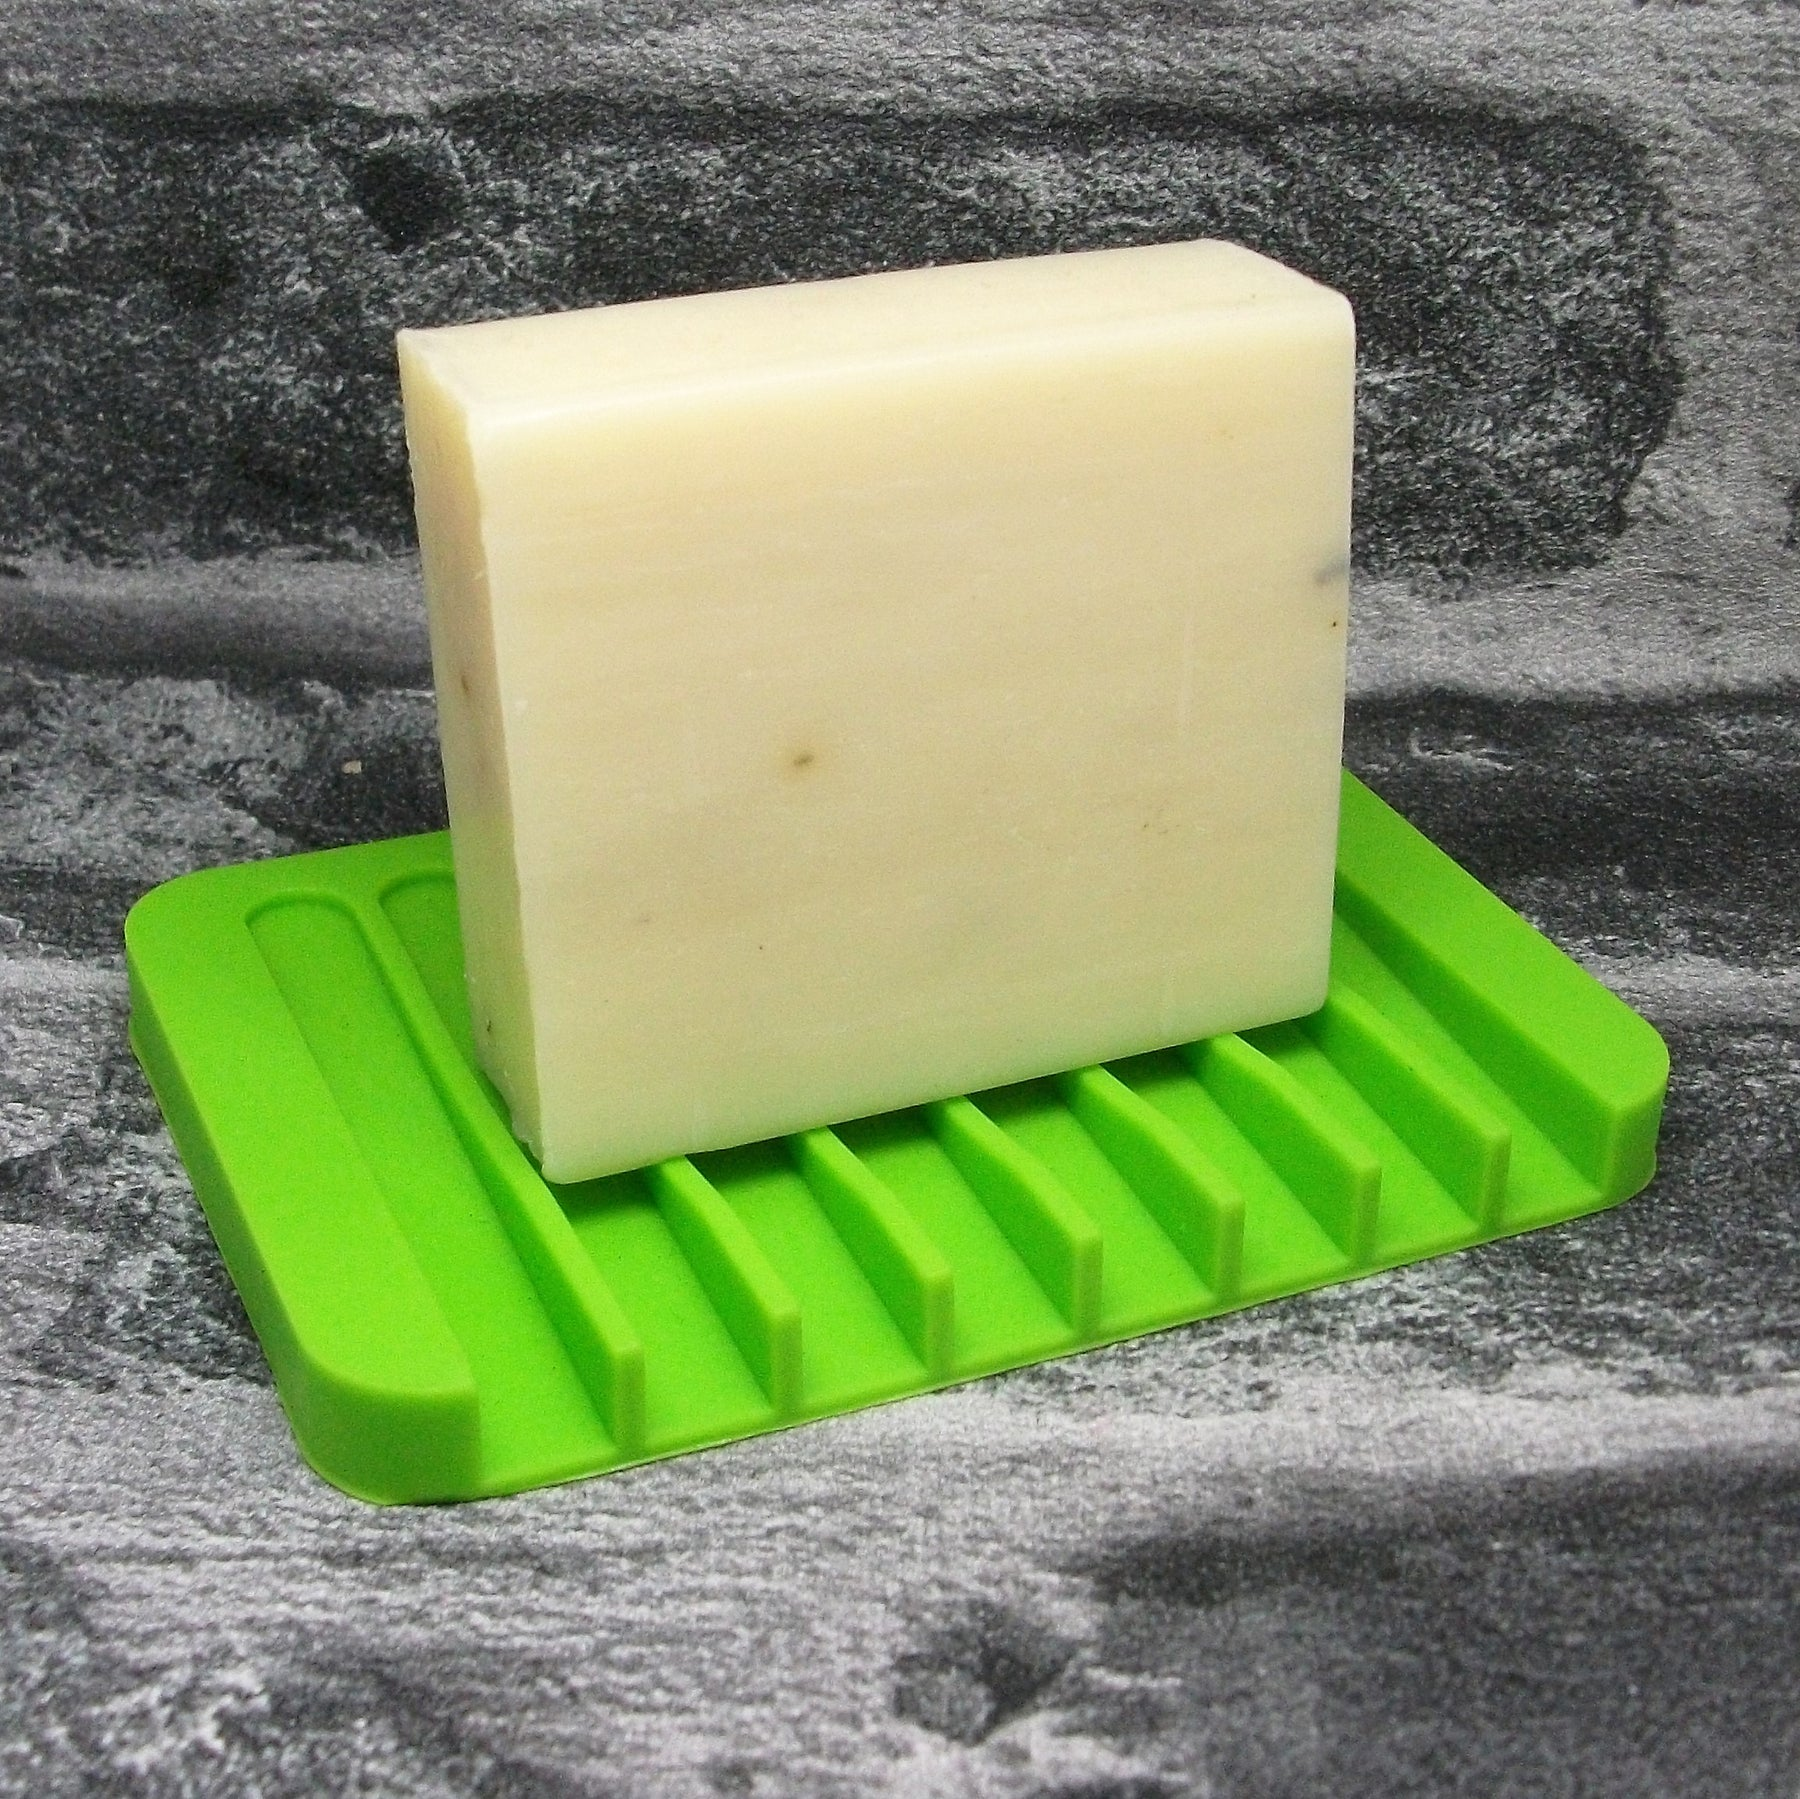 Green Silicone Soap Dish - Adam & Eco